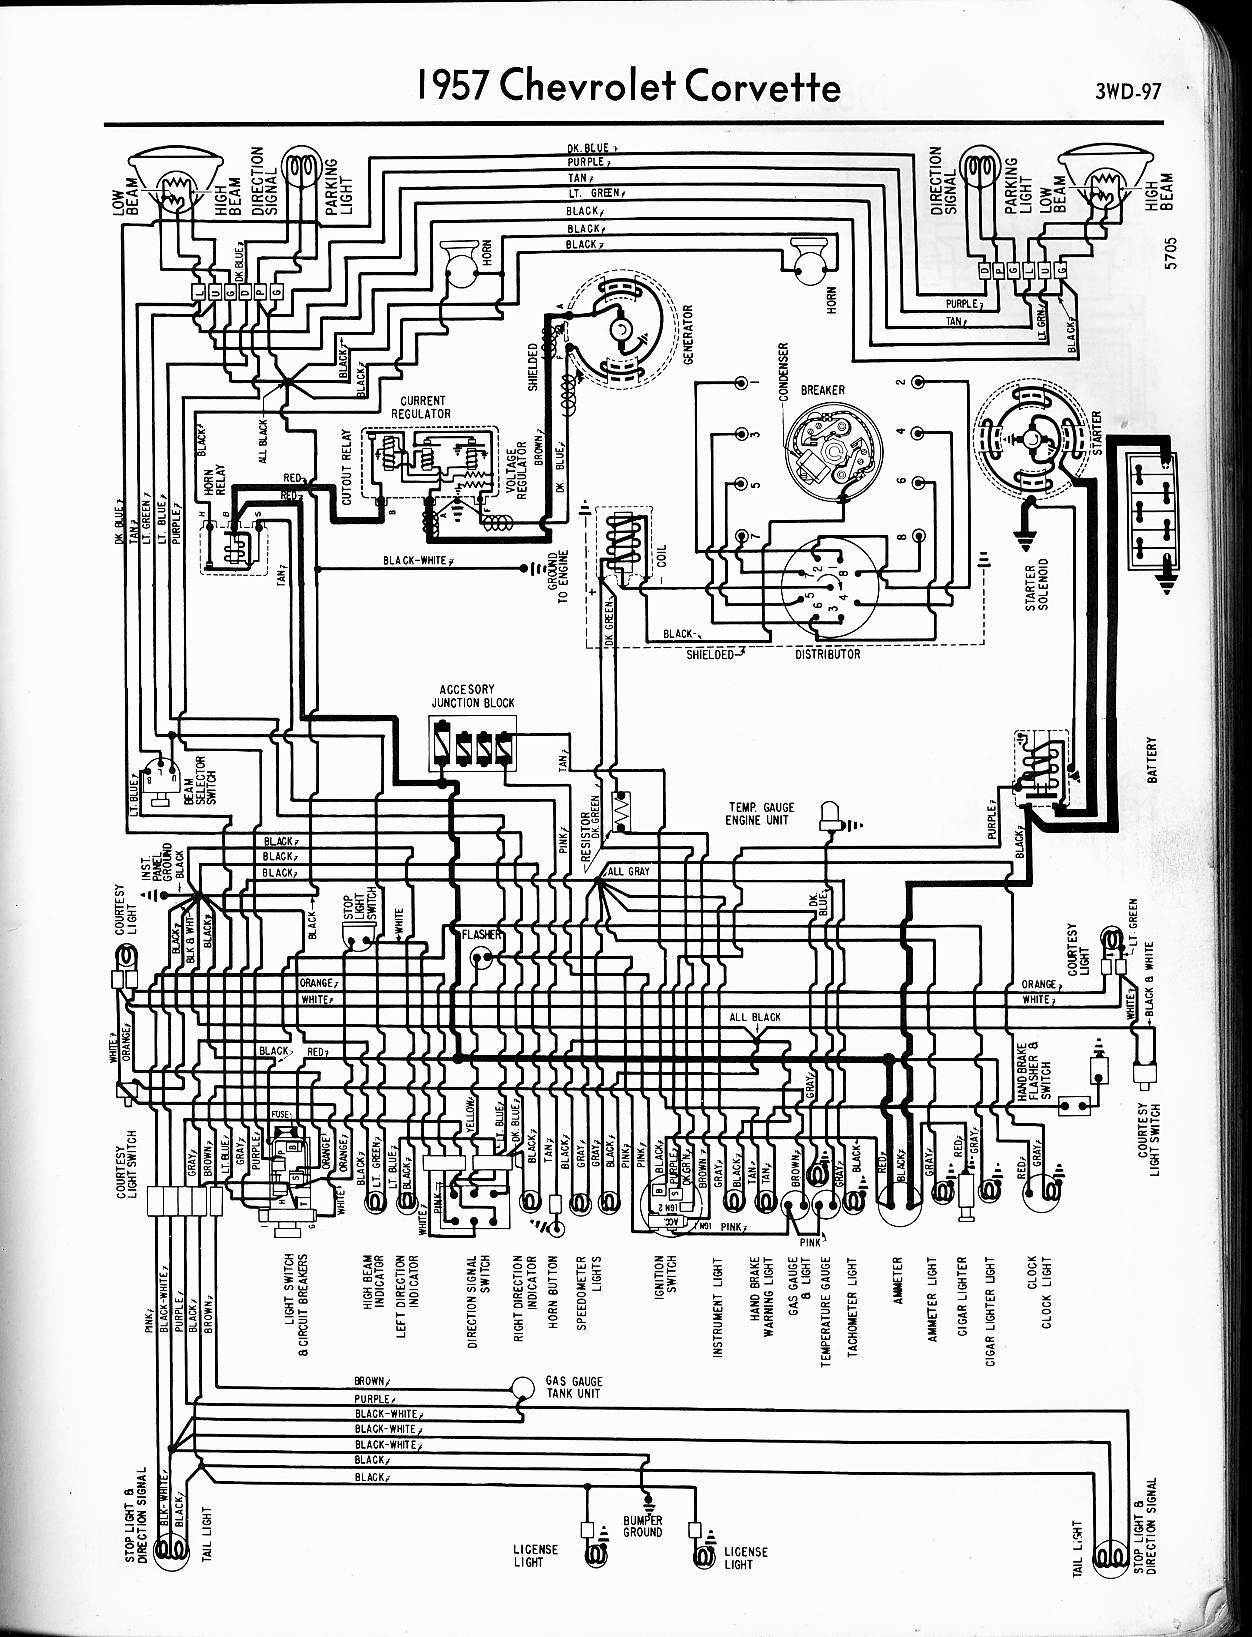 1958 Chevy Wiring Diagram Library 62 1957 Corvette